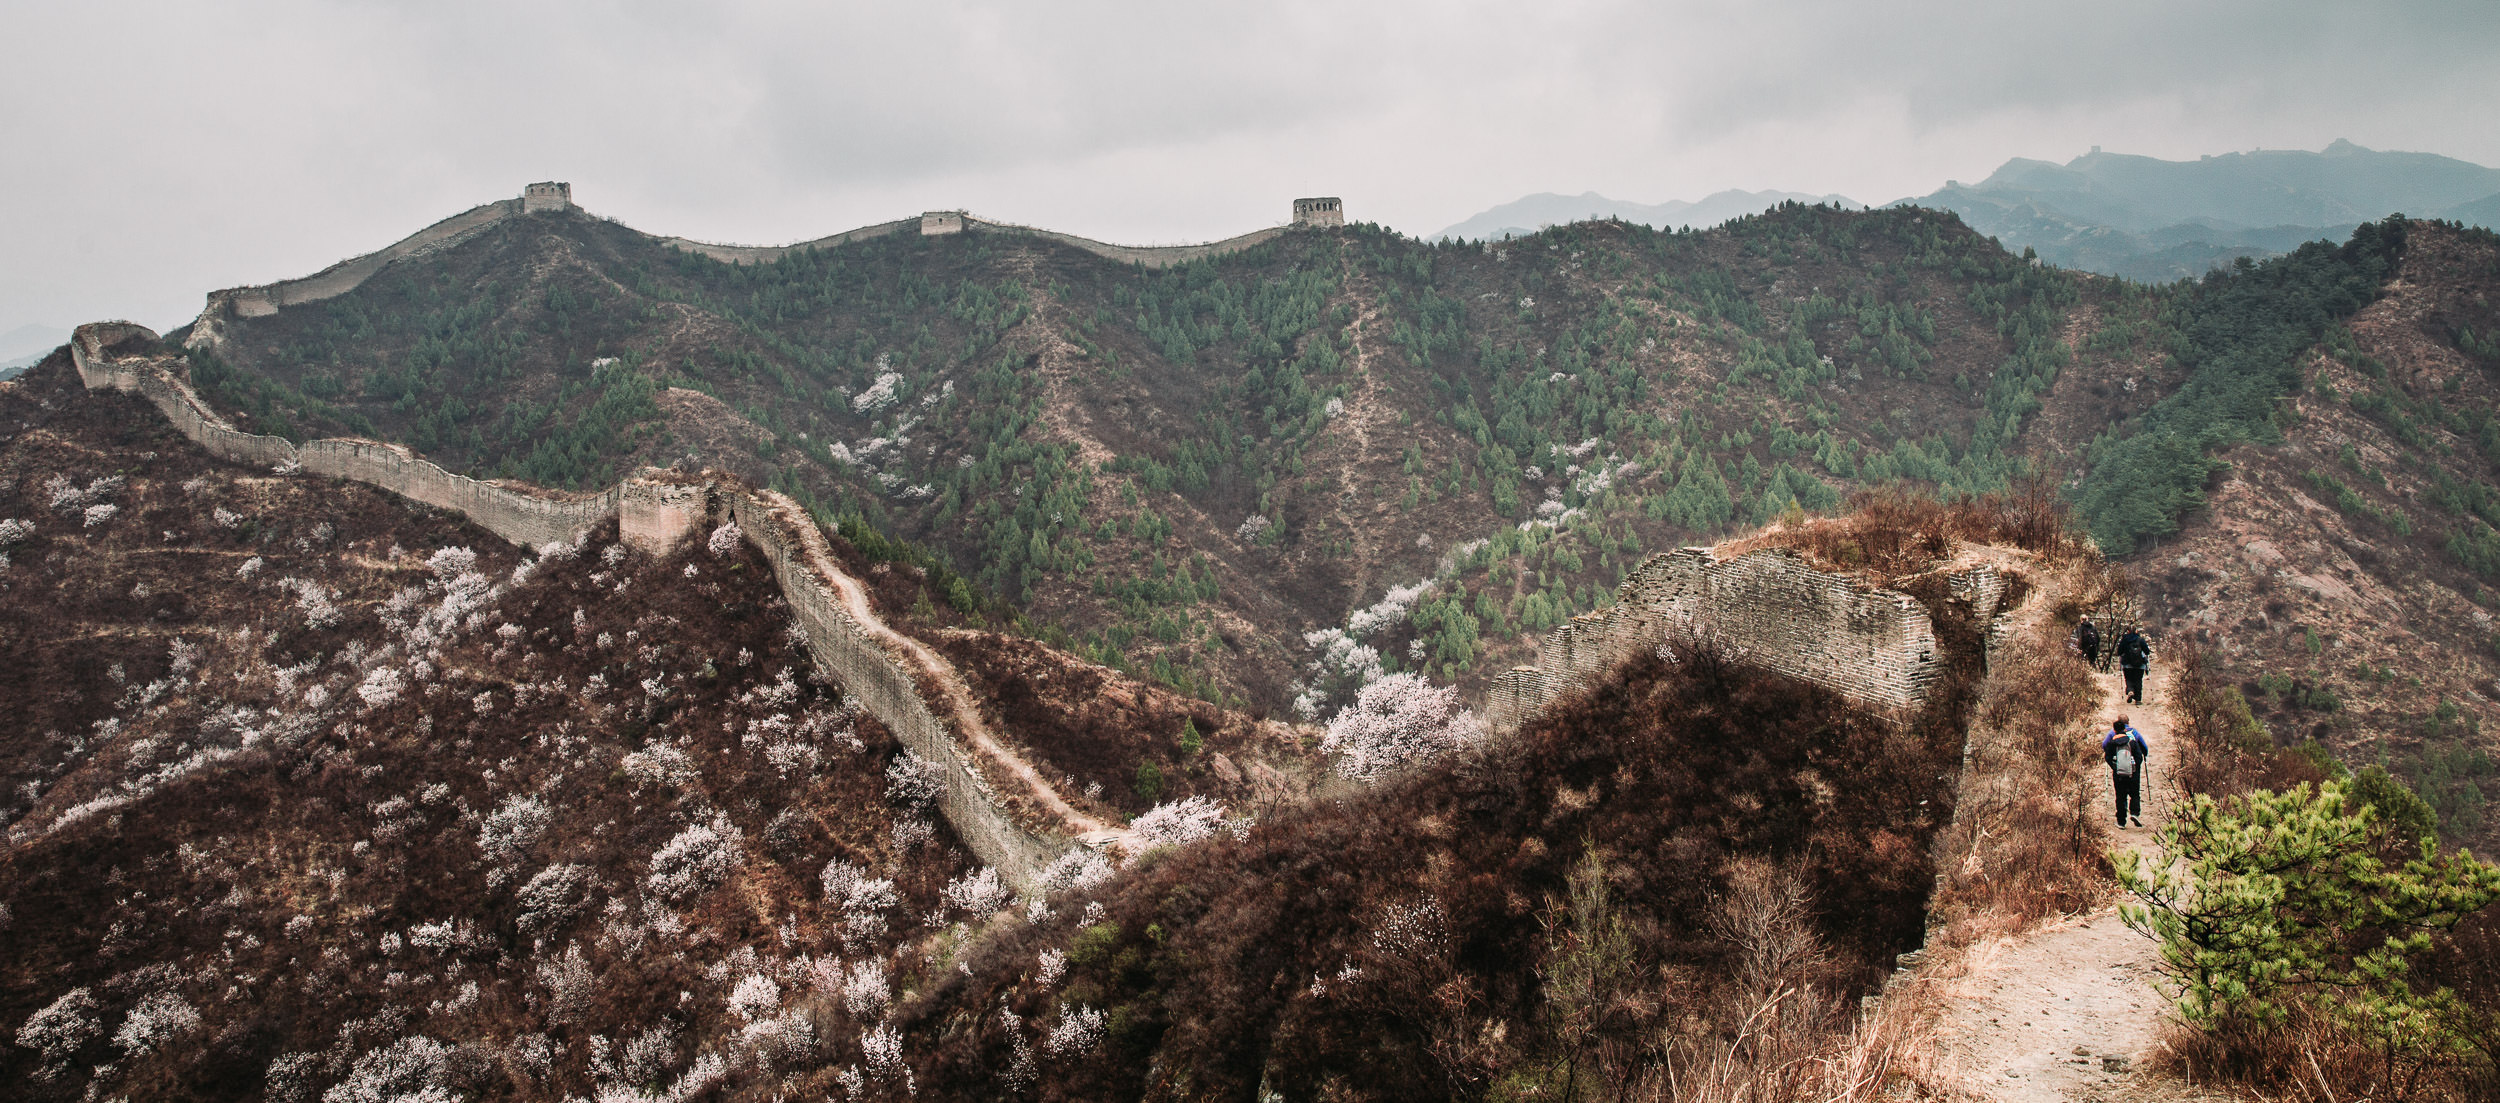 The Gubeiku Leg of the Great Wall in Springtime is only just coming to life in early April. White apricot blossoms are some of the first of the season and line the path.